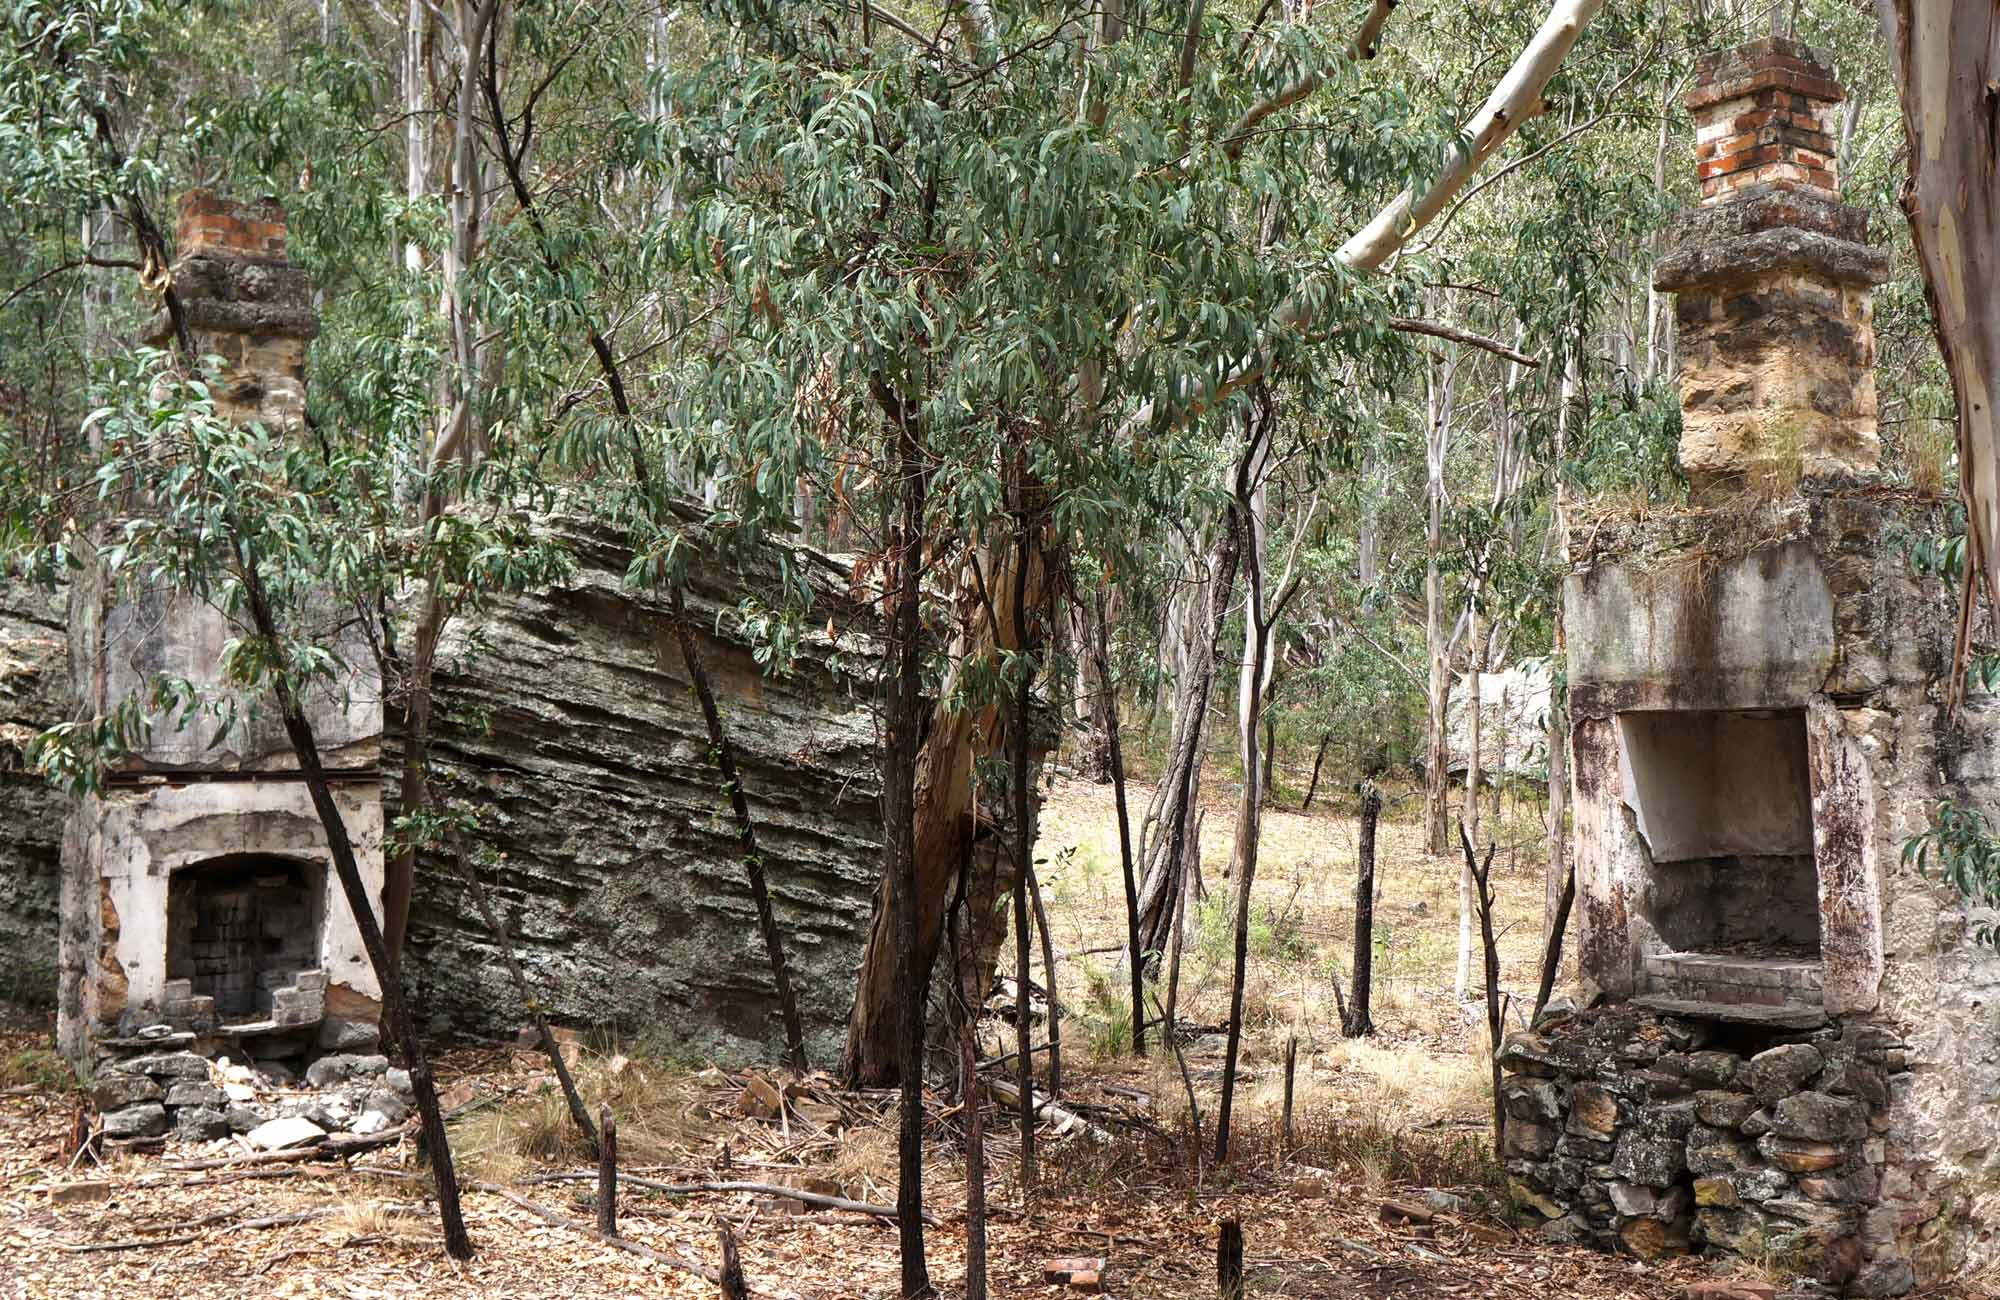 Chimney, Newnes Industrial Ruins, Wollemi National Park. Photo: Steve Alton